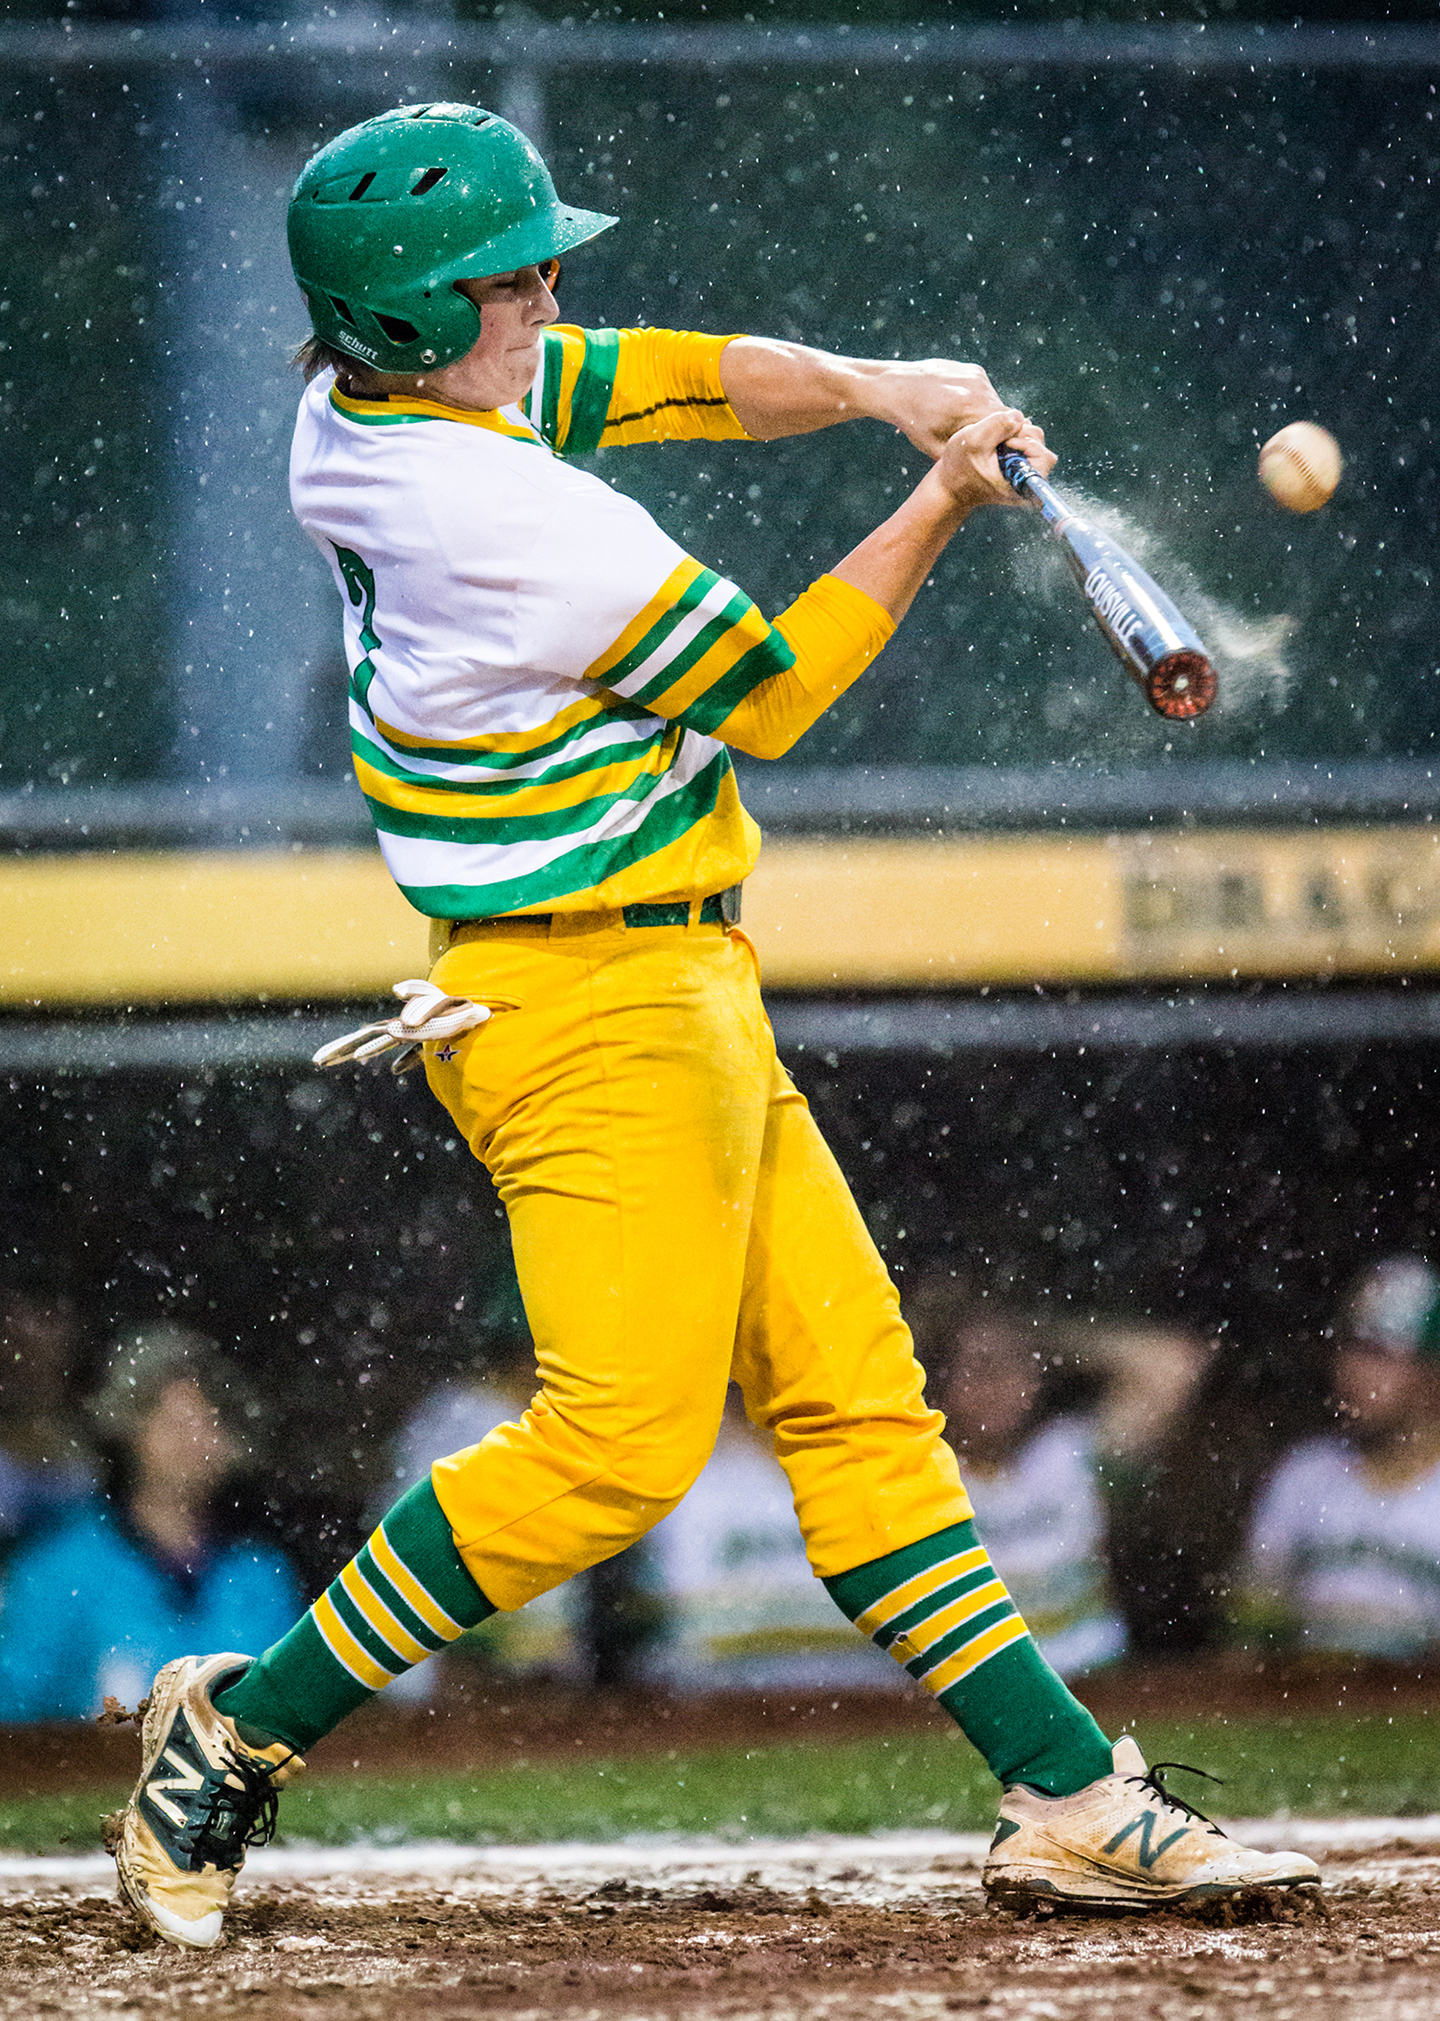 West Davidson's Austin Musgrave bats against Central Davidson in the rain during their game on April 26, 2018 at West Davidson High school in Lexington, North Carolina. [Dan Busey/The Dispatch]